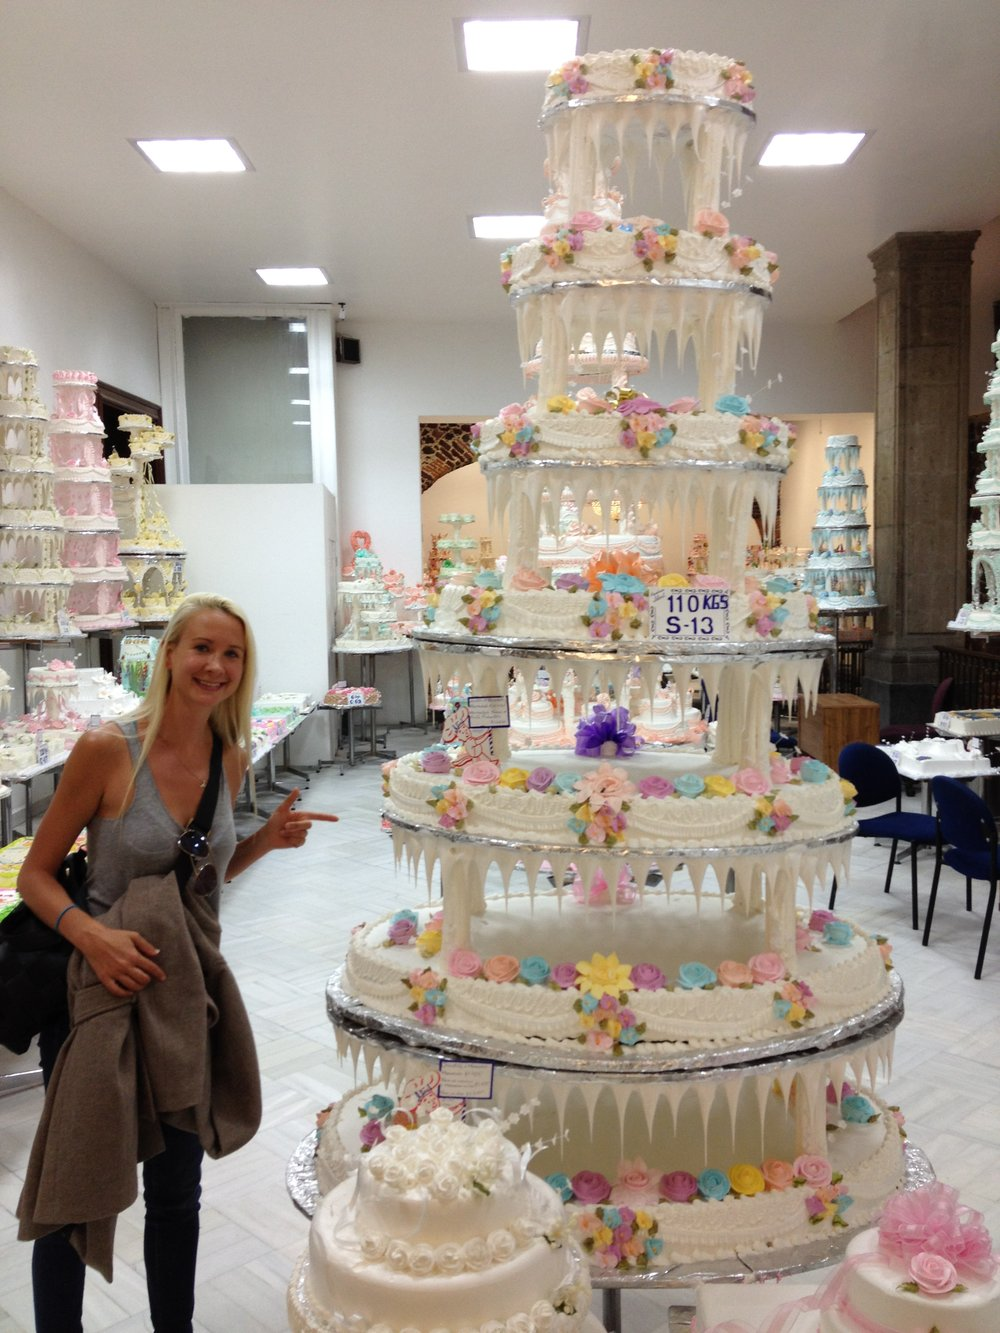 Walking around downtown you'll find tons of interesting places--including this famous bakery and wedding cake shop.